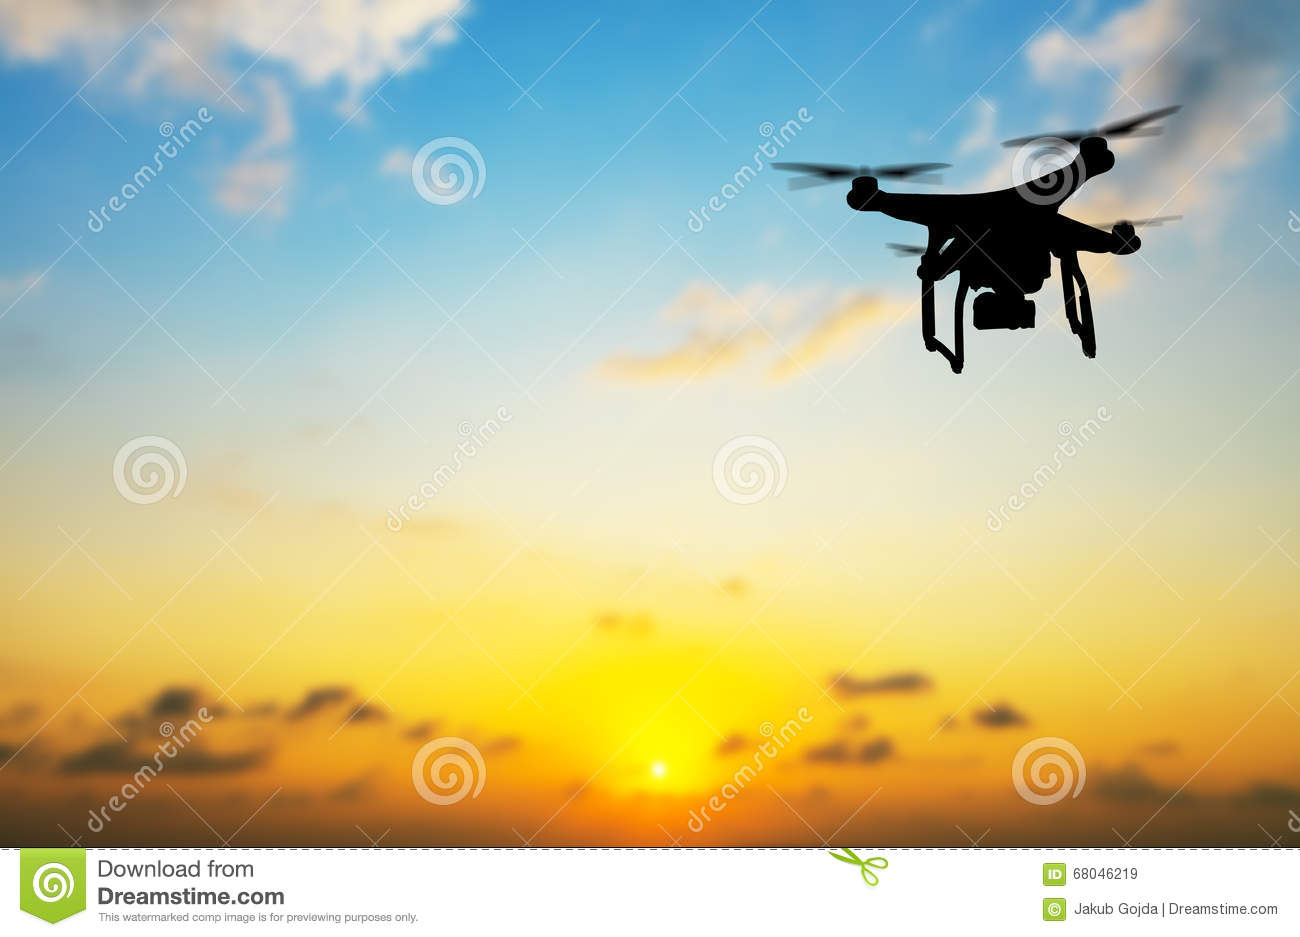 remote flying helicopter with Stock Photo Flying Silhouette Drone Against Sunset Beautiful Sky Image68046219 on Trips further Drone Camera Clip Art moreover Silhouette Drone besides Understanding The Benefits Of Lidar Data also Indigenous  munity Wiped Out By Gold Miners In Southern Venezuela.